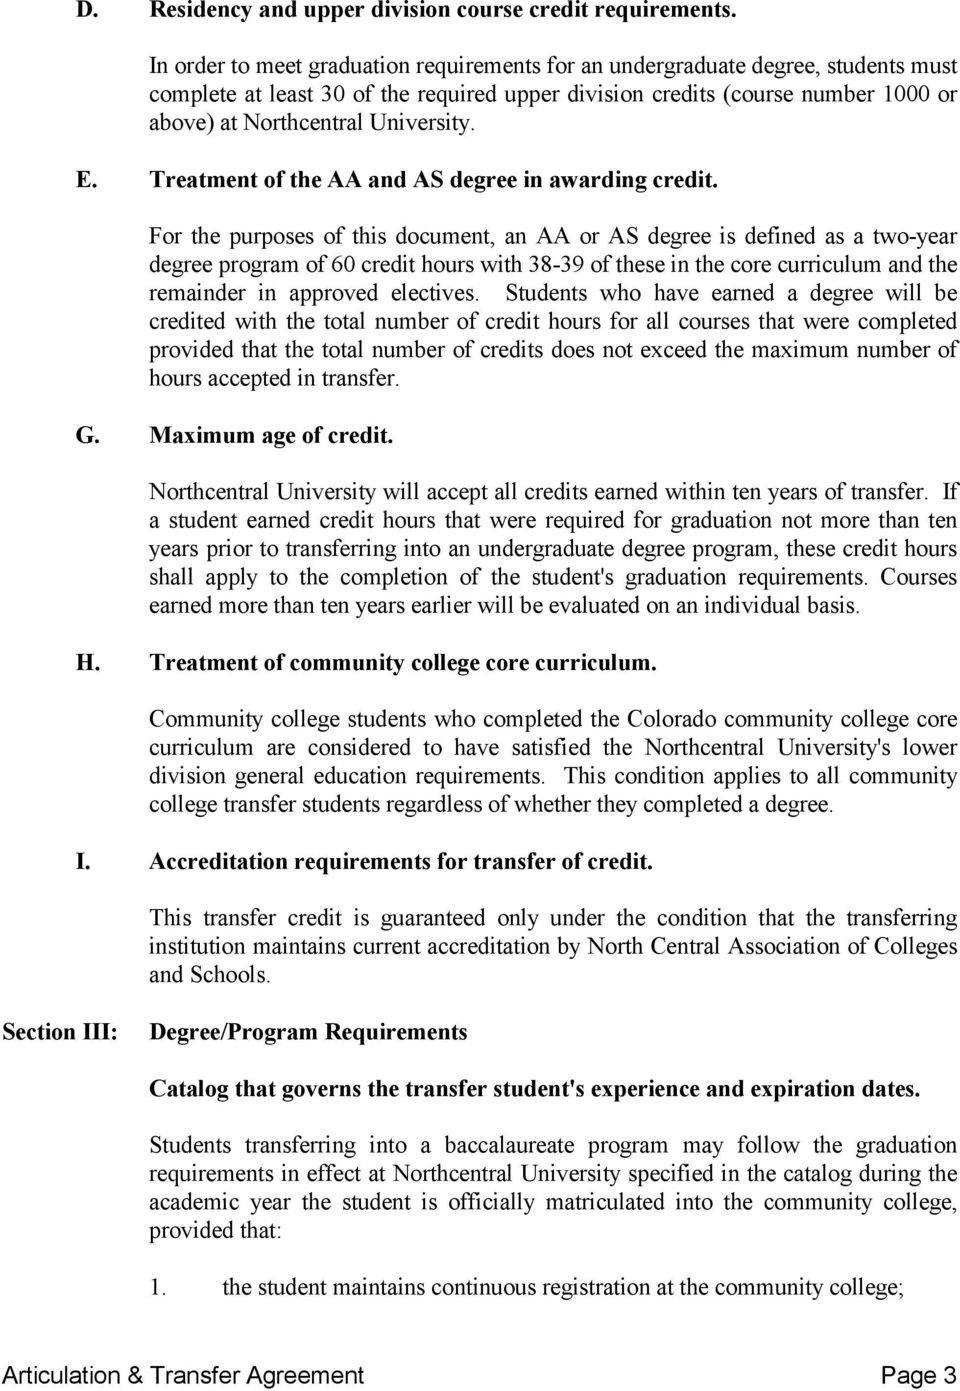 Treatment of the AA and AS degree in awarding credit.